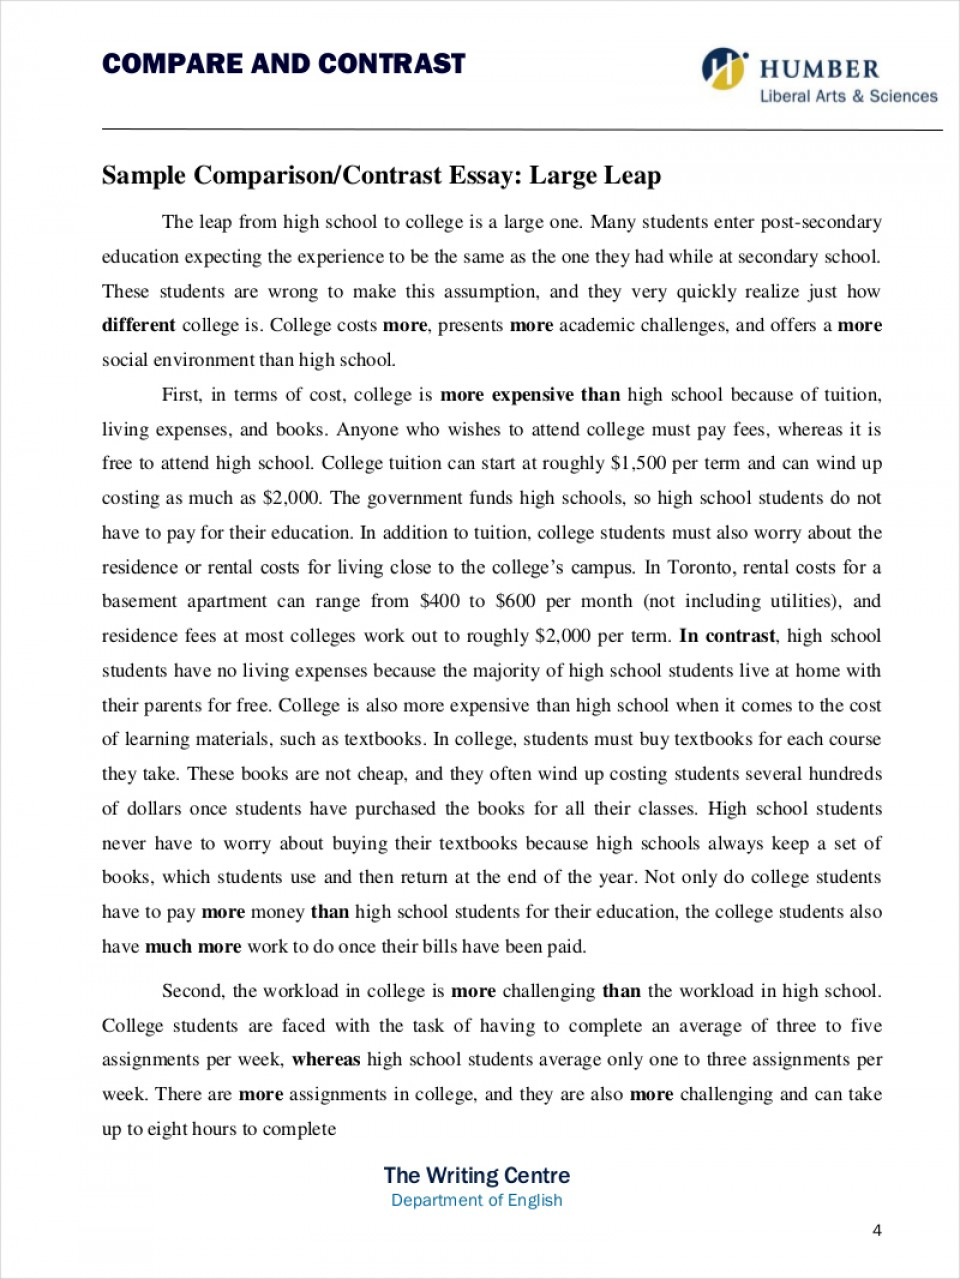 014 How To Write Compare And Contrast Essay Example Comparative Samples Free Pdf Format Download Throughout Examples Comparison Thesis Coles Thecolossus Co Within Ex Outstanding A Block Conclusion Paragraph For 960